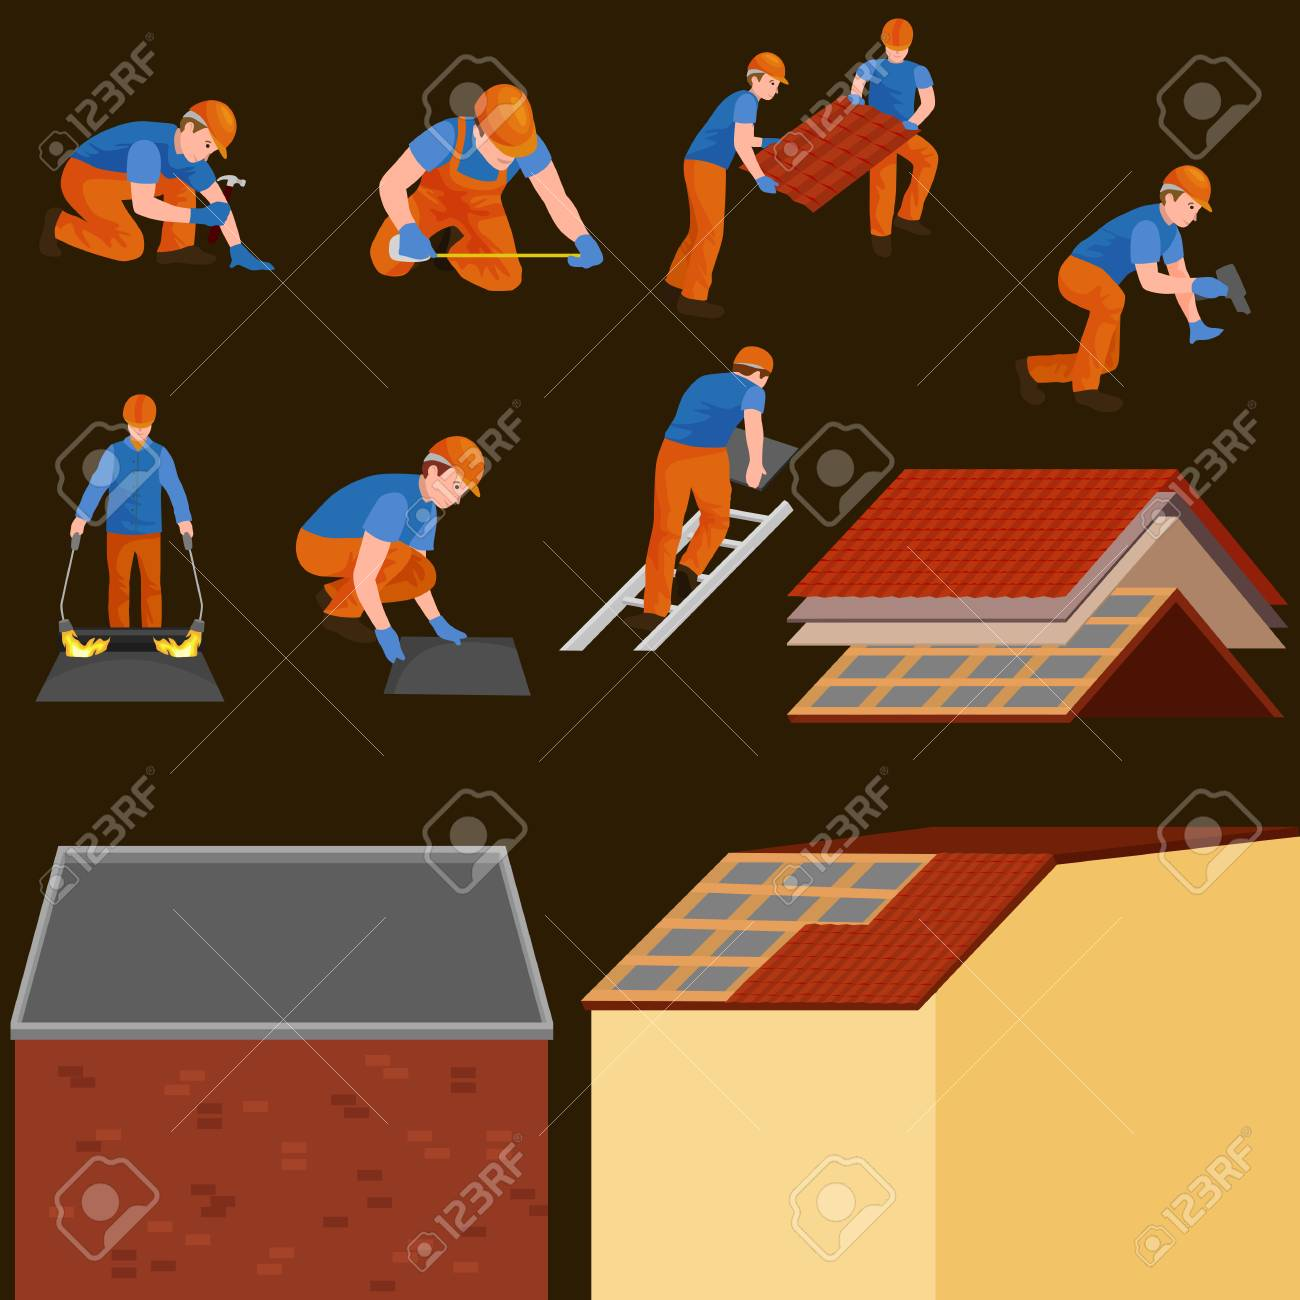 roof construction worker repair home, build structure fixing rooftop tile house with labor equipment, roofer men with work tools in hands outdoors renovation residential vector illustration Stock Photo - 73542412